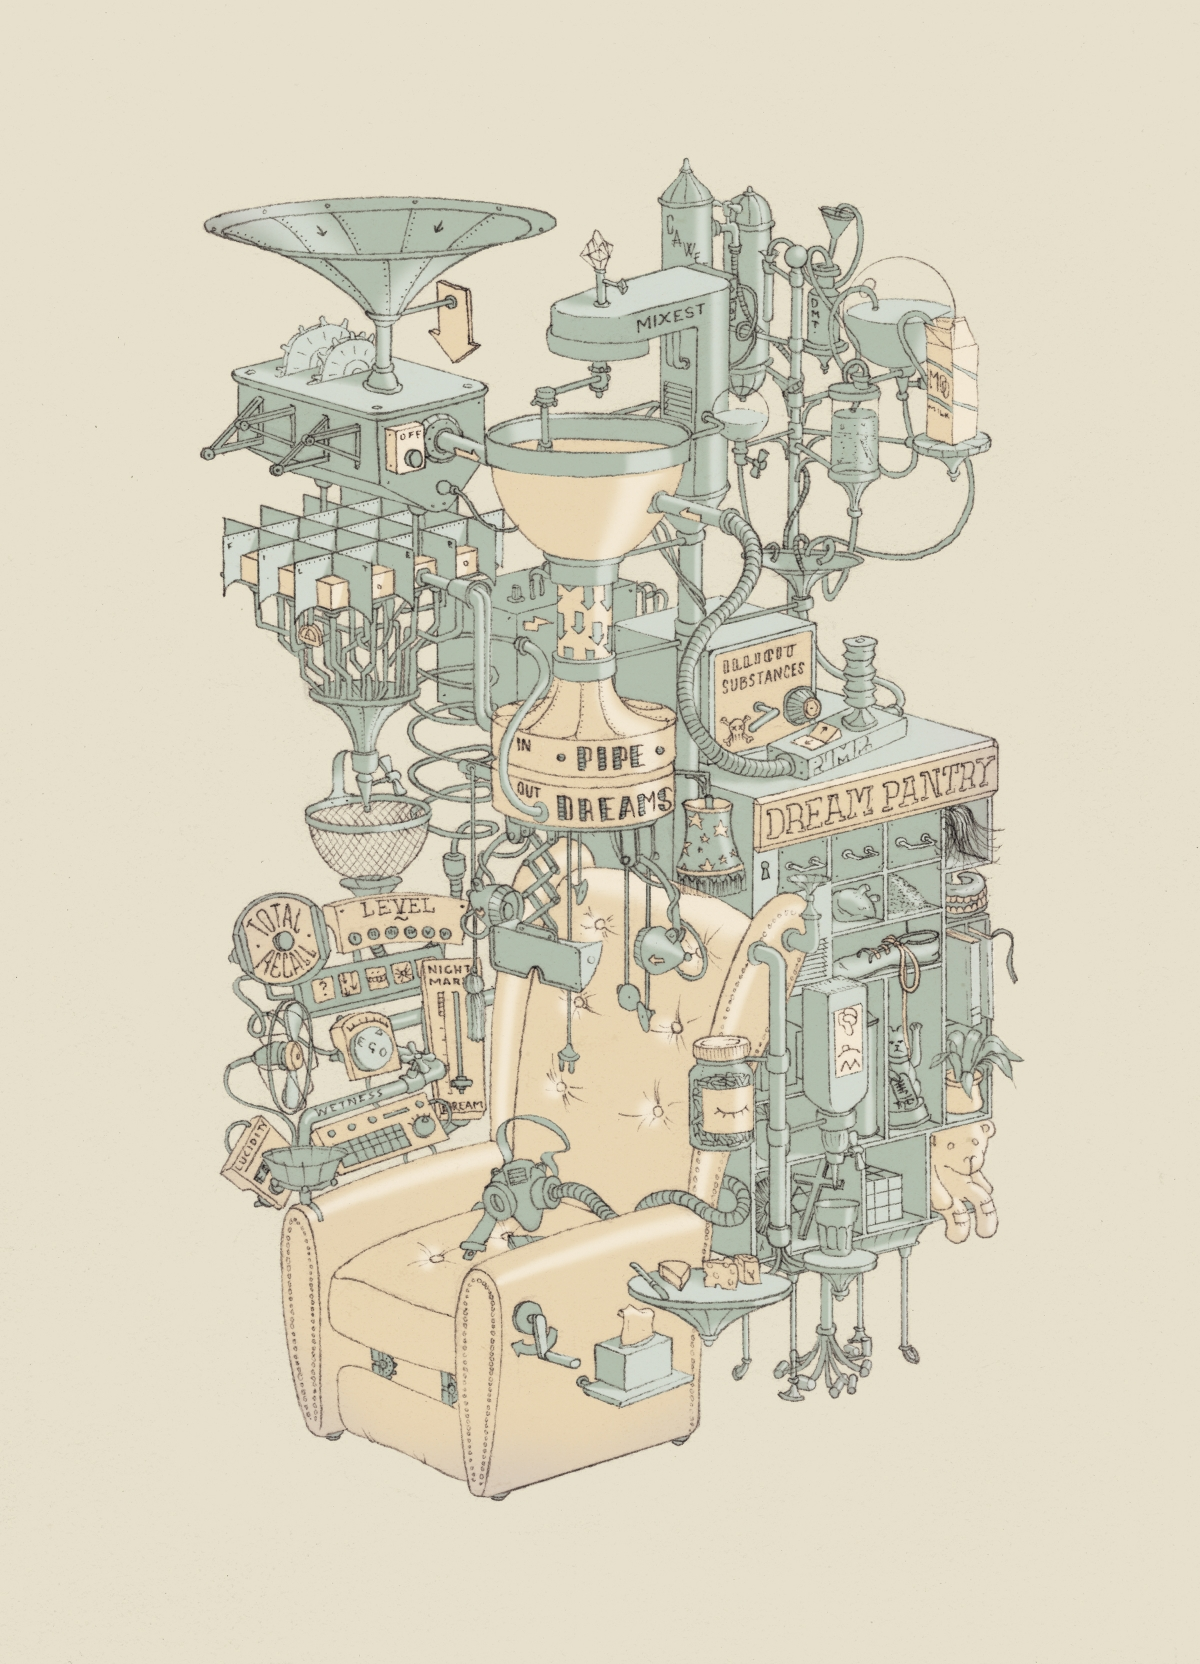 An illustrated dream machine called Pipe Dreams.